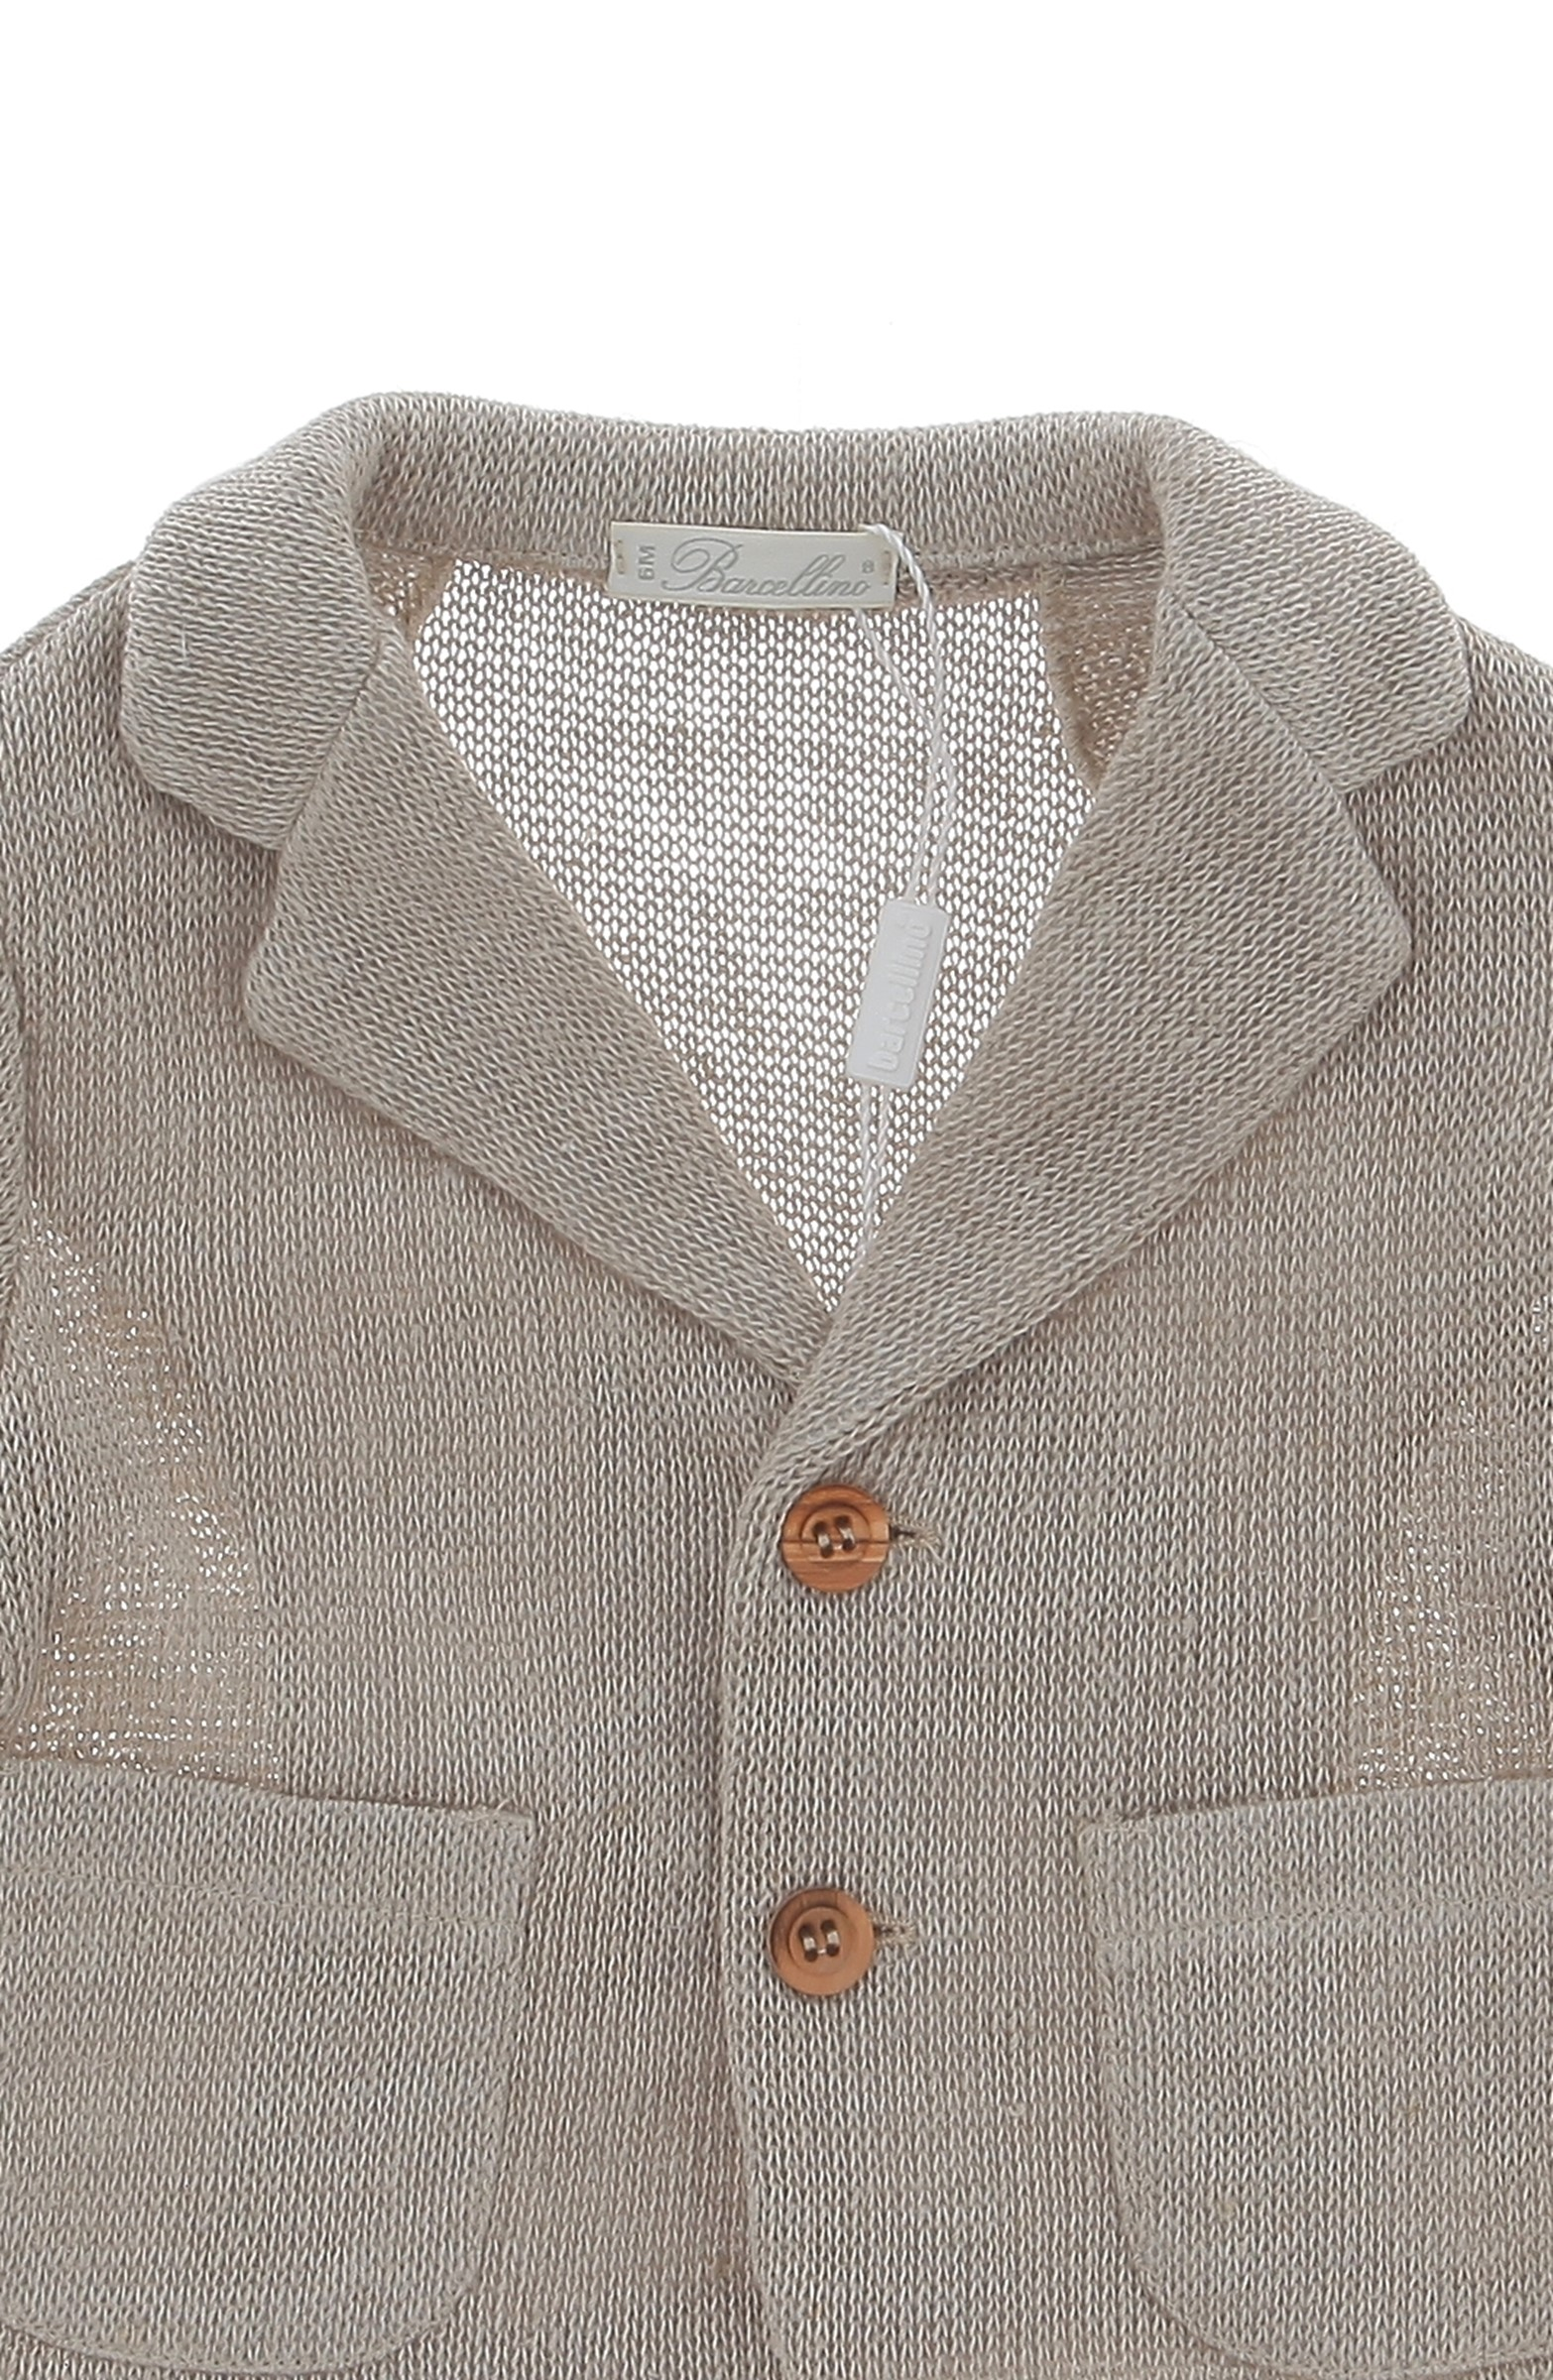 Barcellino jacket Barcellino | Jacket | 9129BEIGE